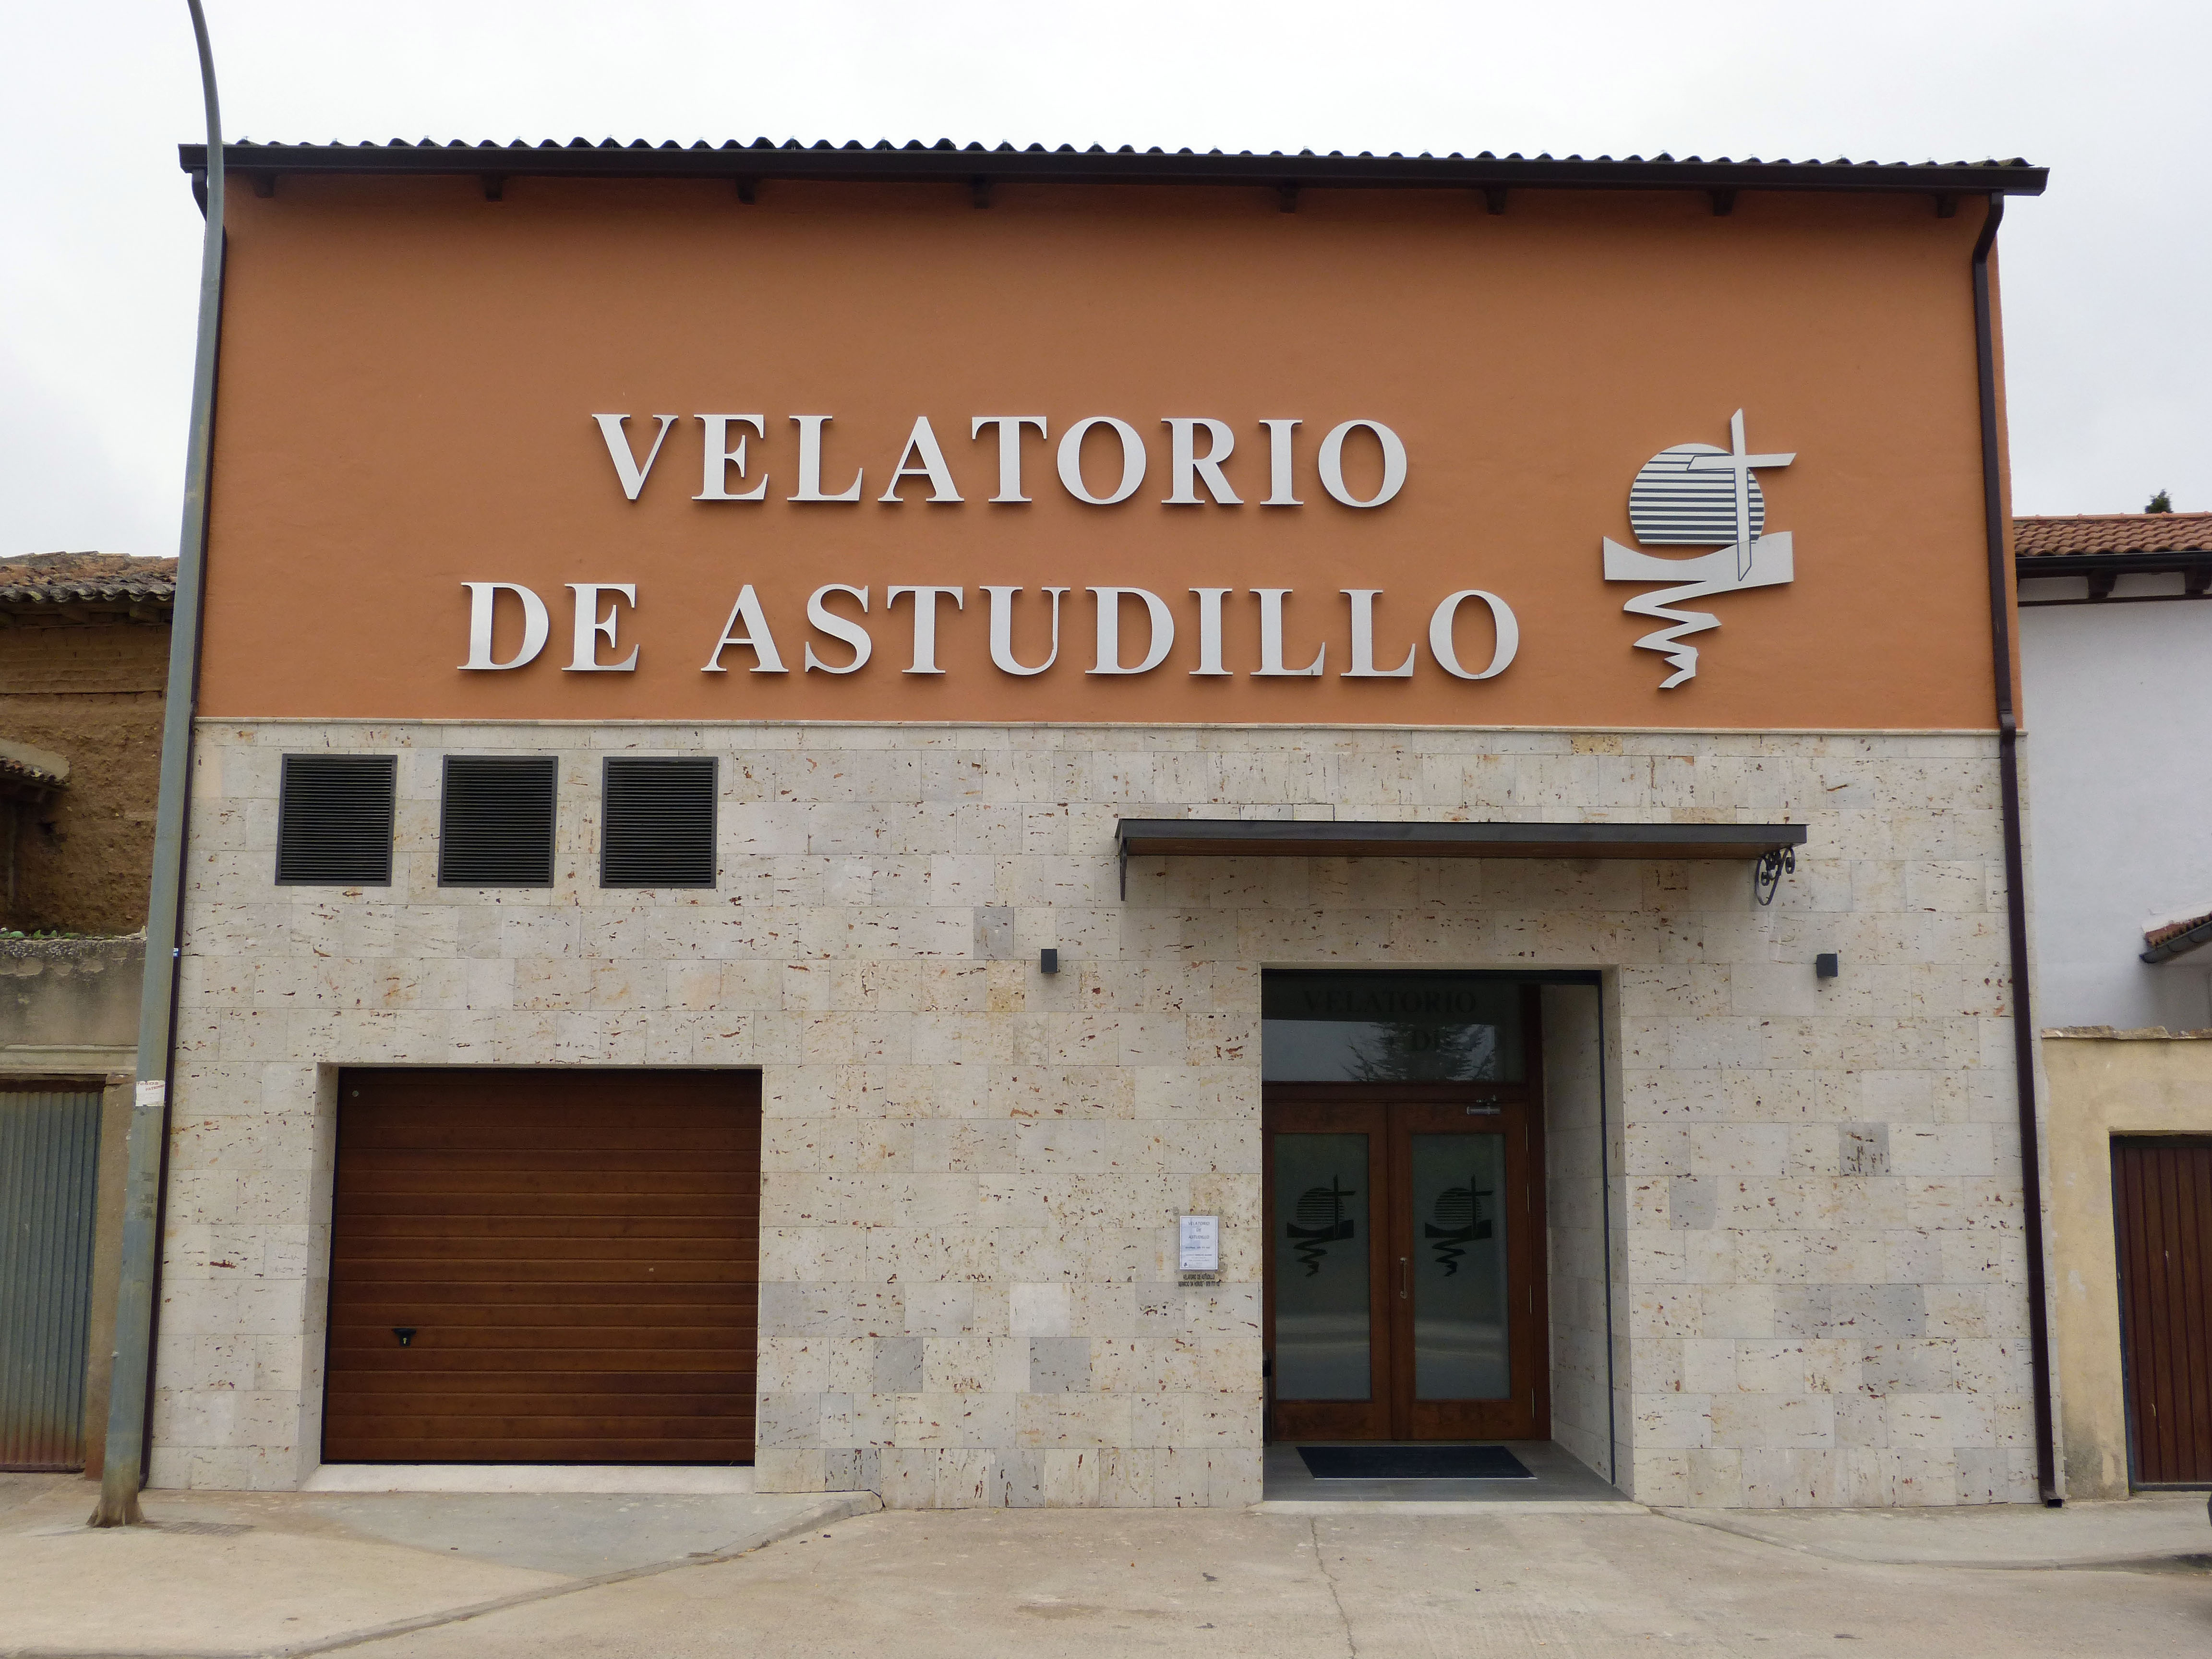 Velatorio de Astudillo